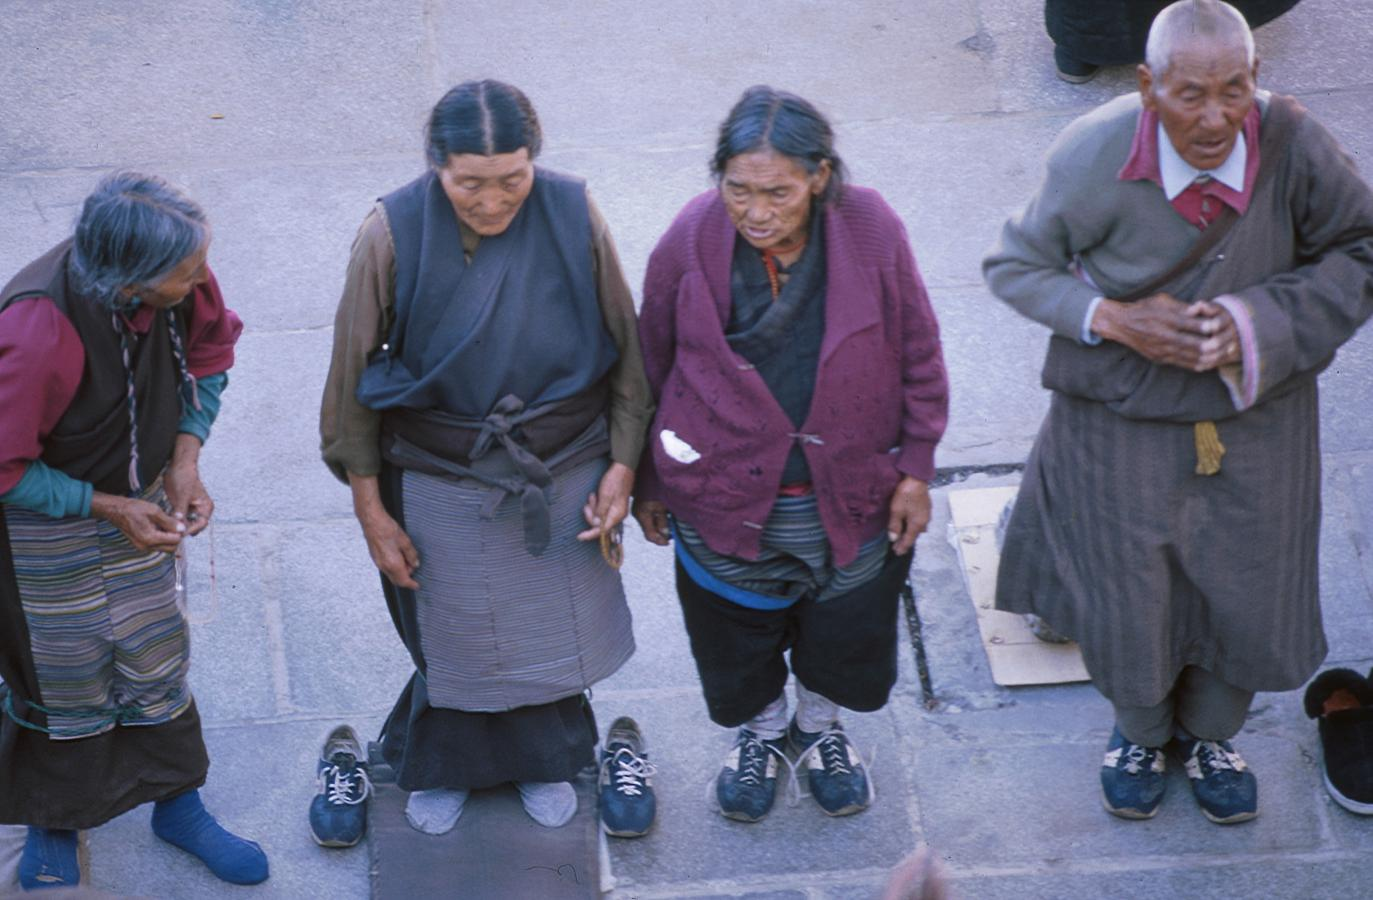 preying-in-front-of-the-jokhang-temple-lhasa-tibet-2000